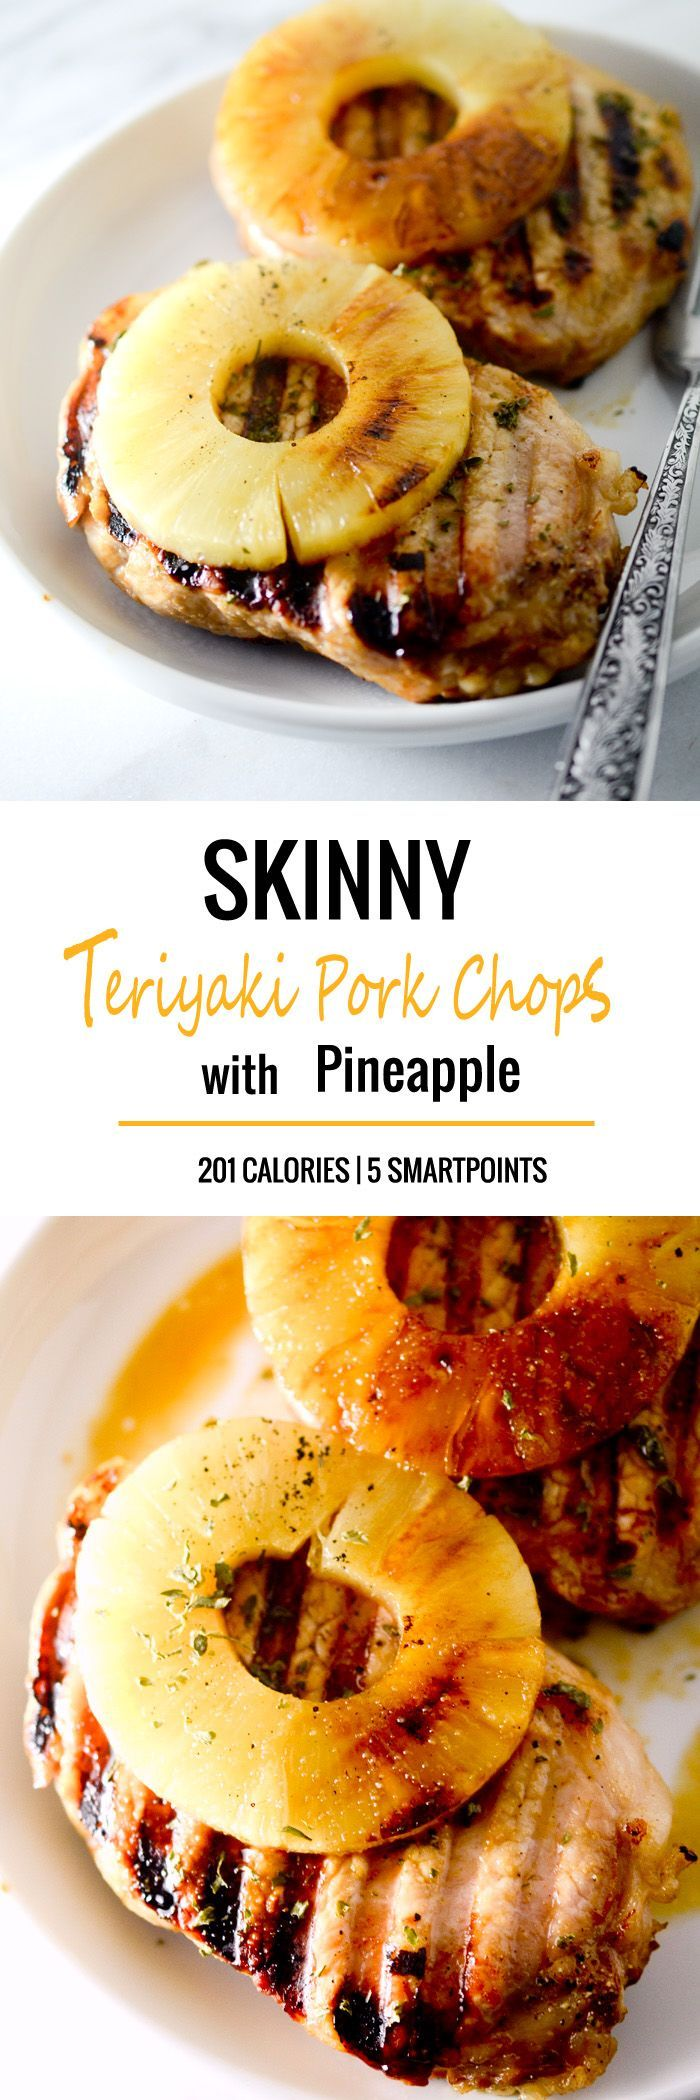 Skinny Teriyaki Pork Chops with Pineapple - 201 Calories, 5 Smartpoints - Recipe Diaries